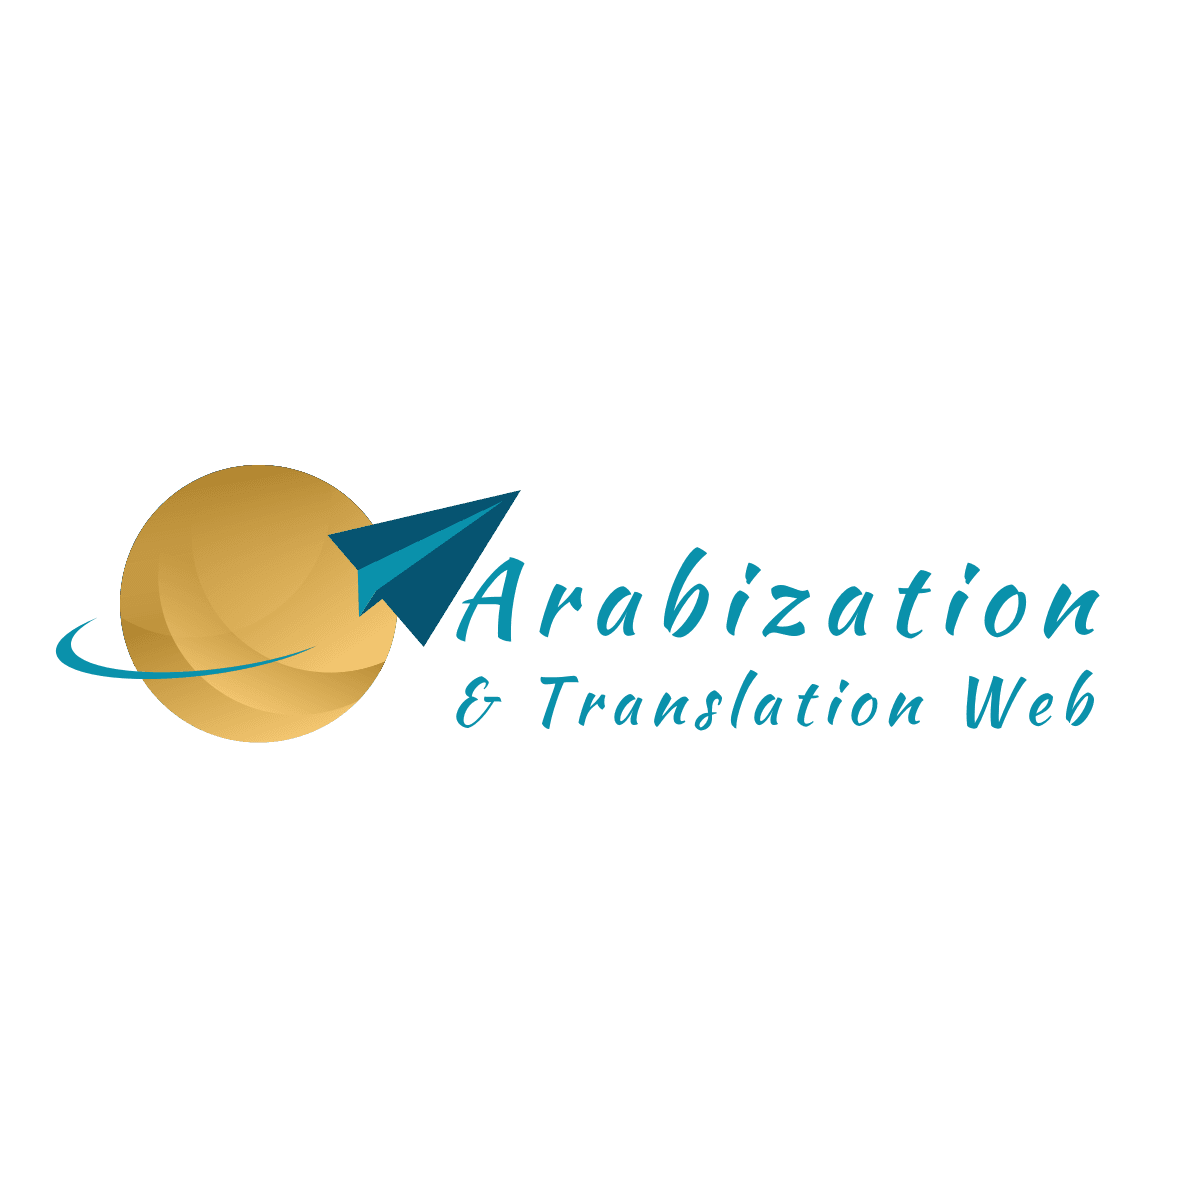 Logo of Arabization & Translation Web